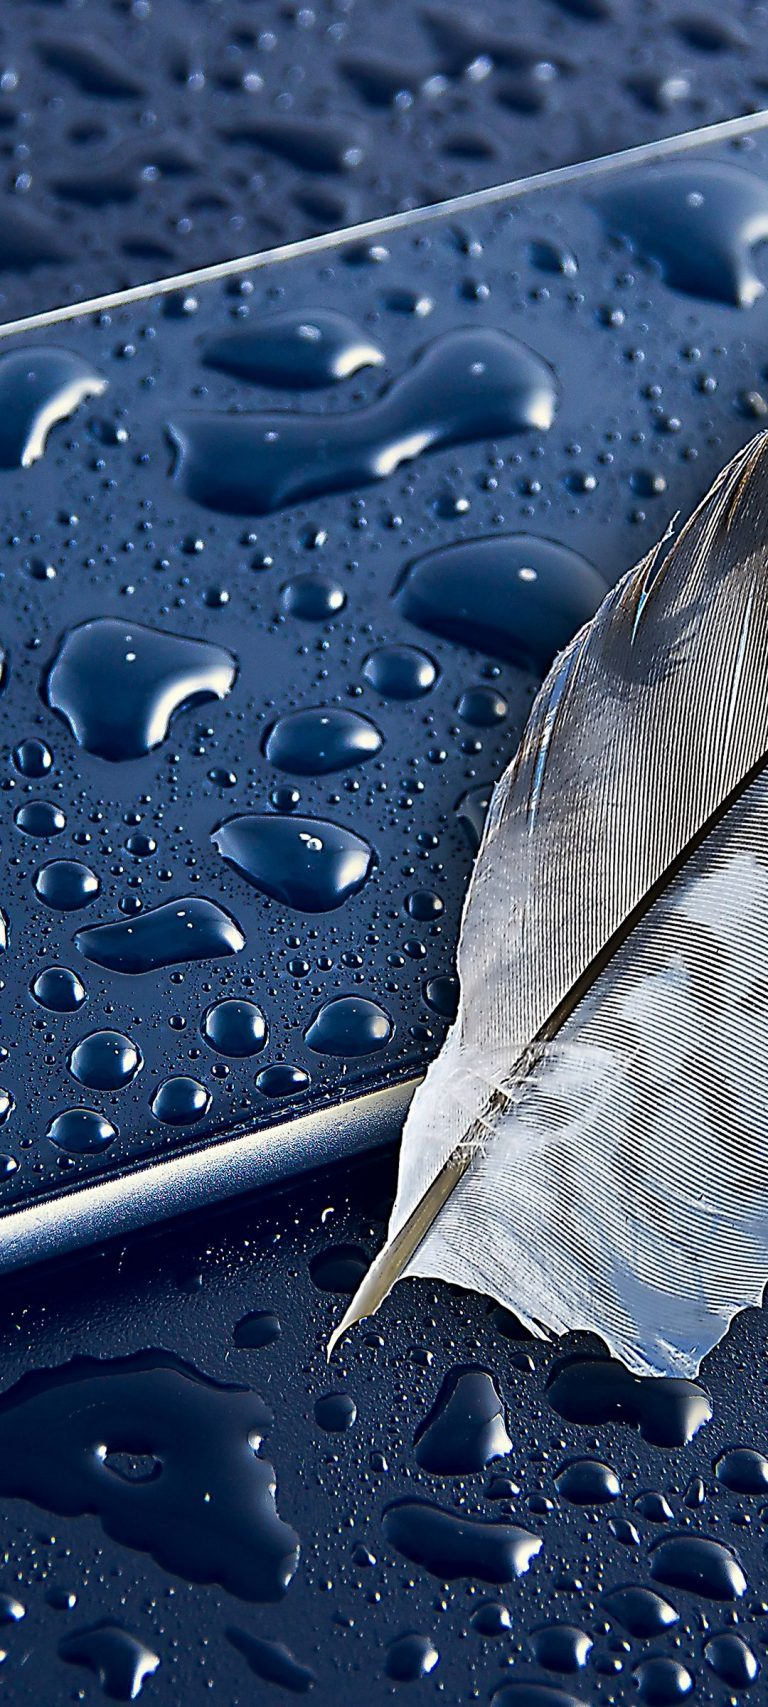 Iphone 6 Apple Feather Smartphone 1080x2400 768x1707